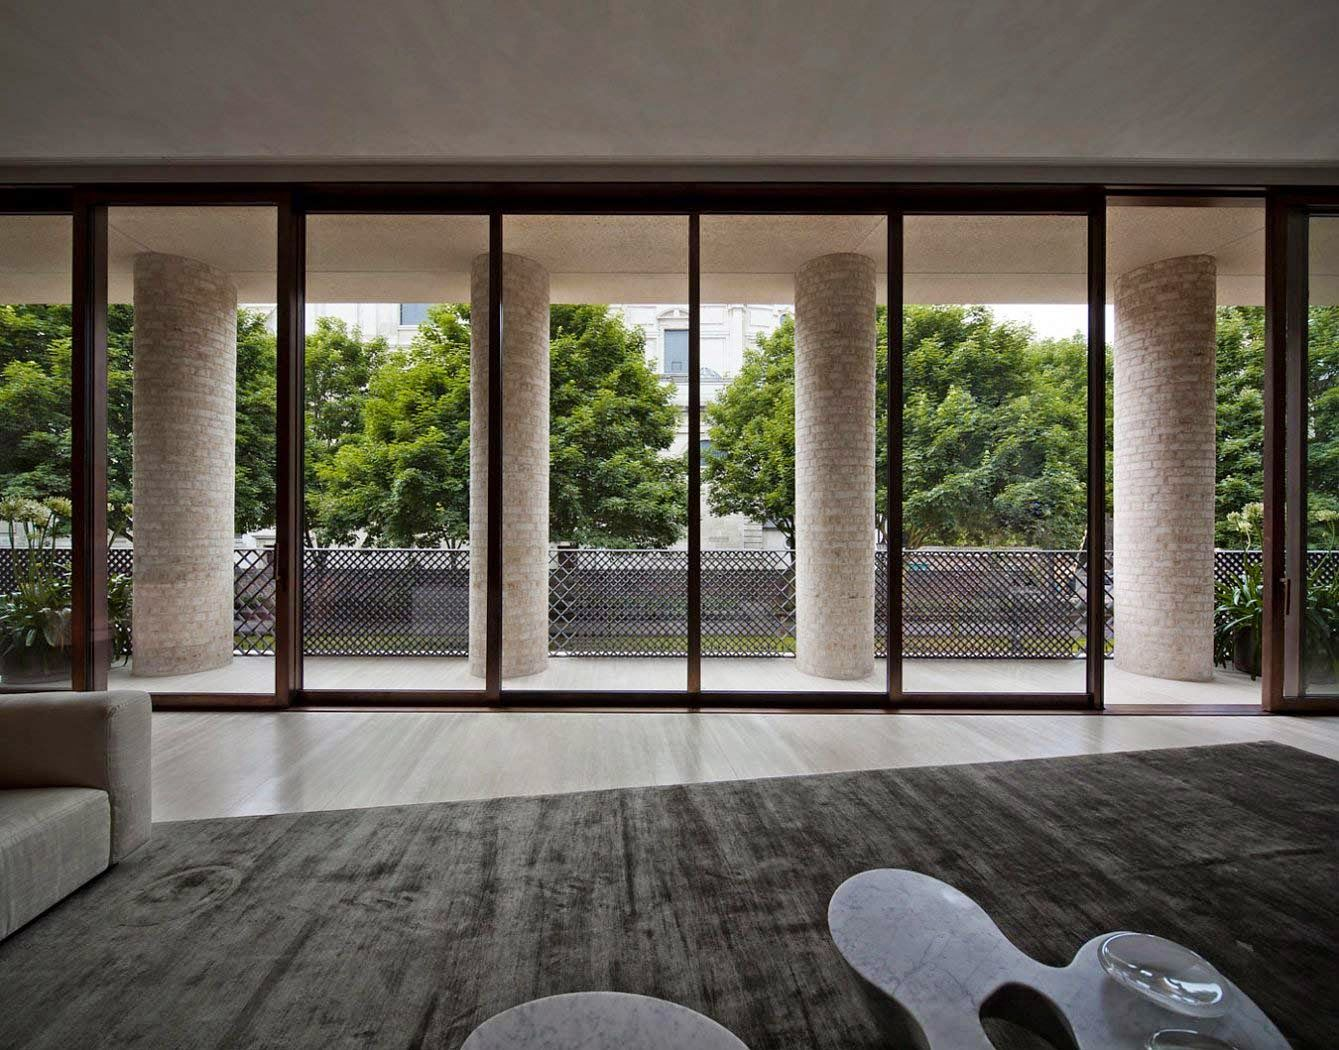 Private house kensington david chipperfield 8 10 cottage for Minimalist house london